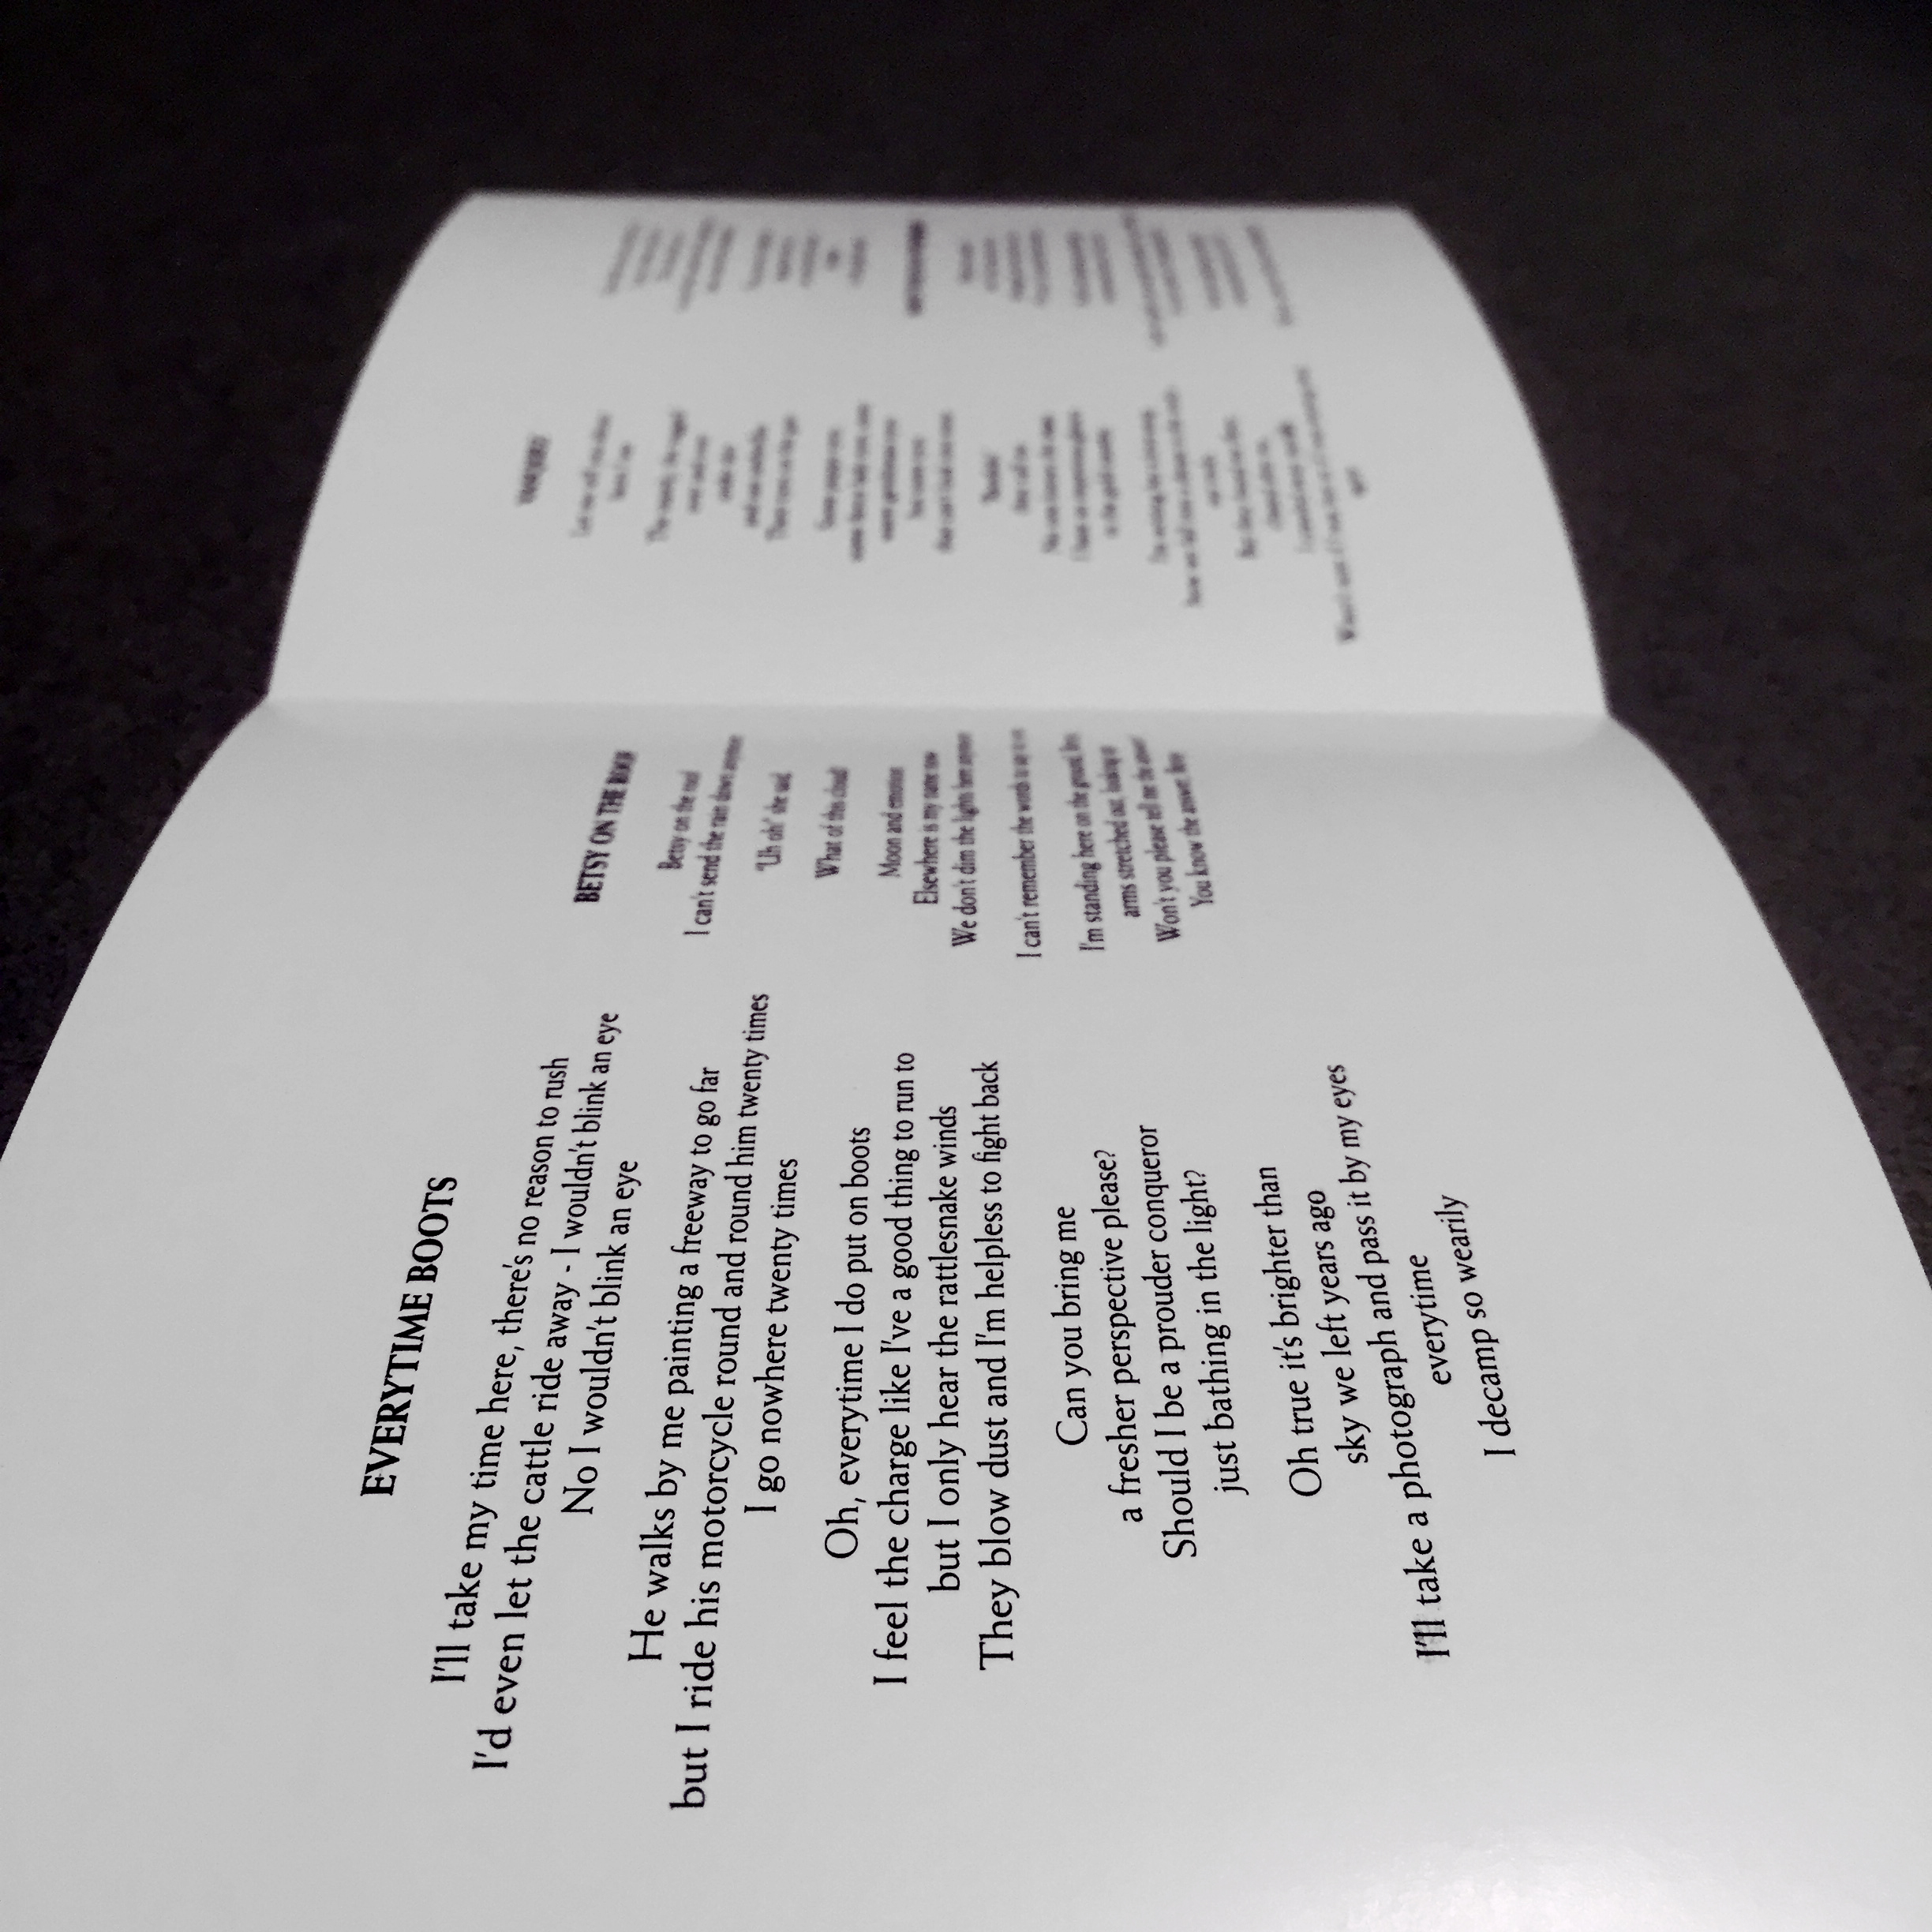 The inside flaps of one side of the liner notes, with song titles and lyrics.